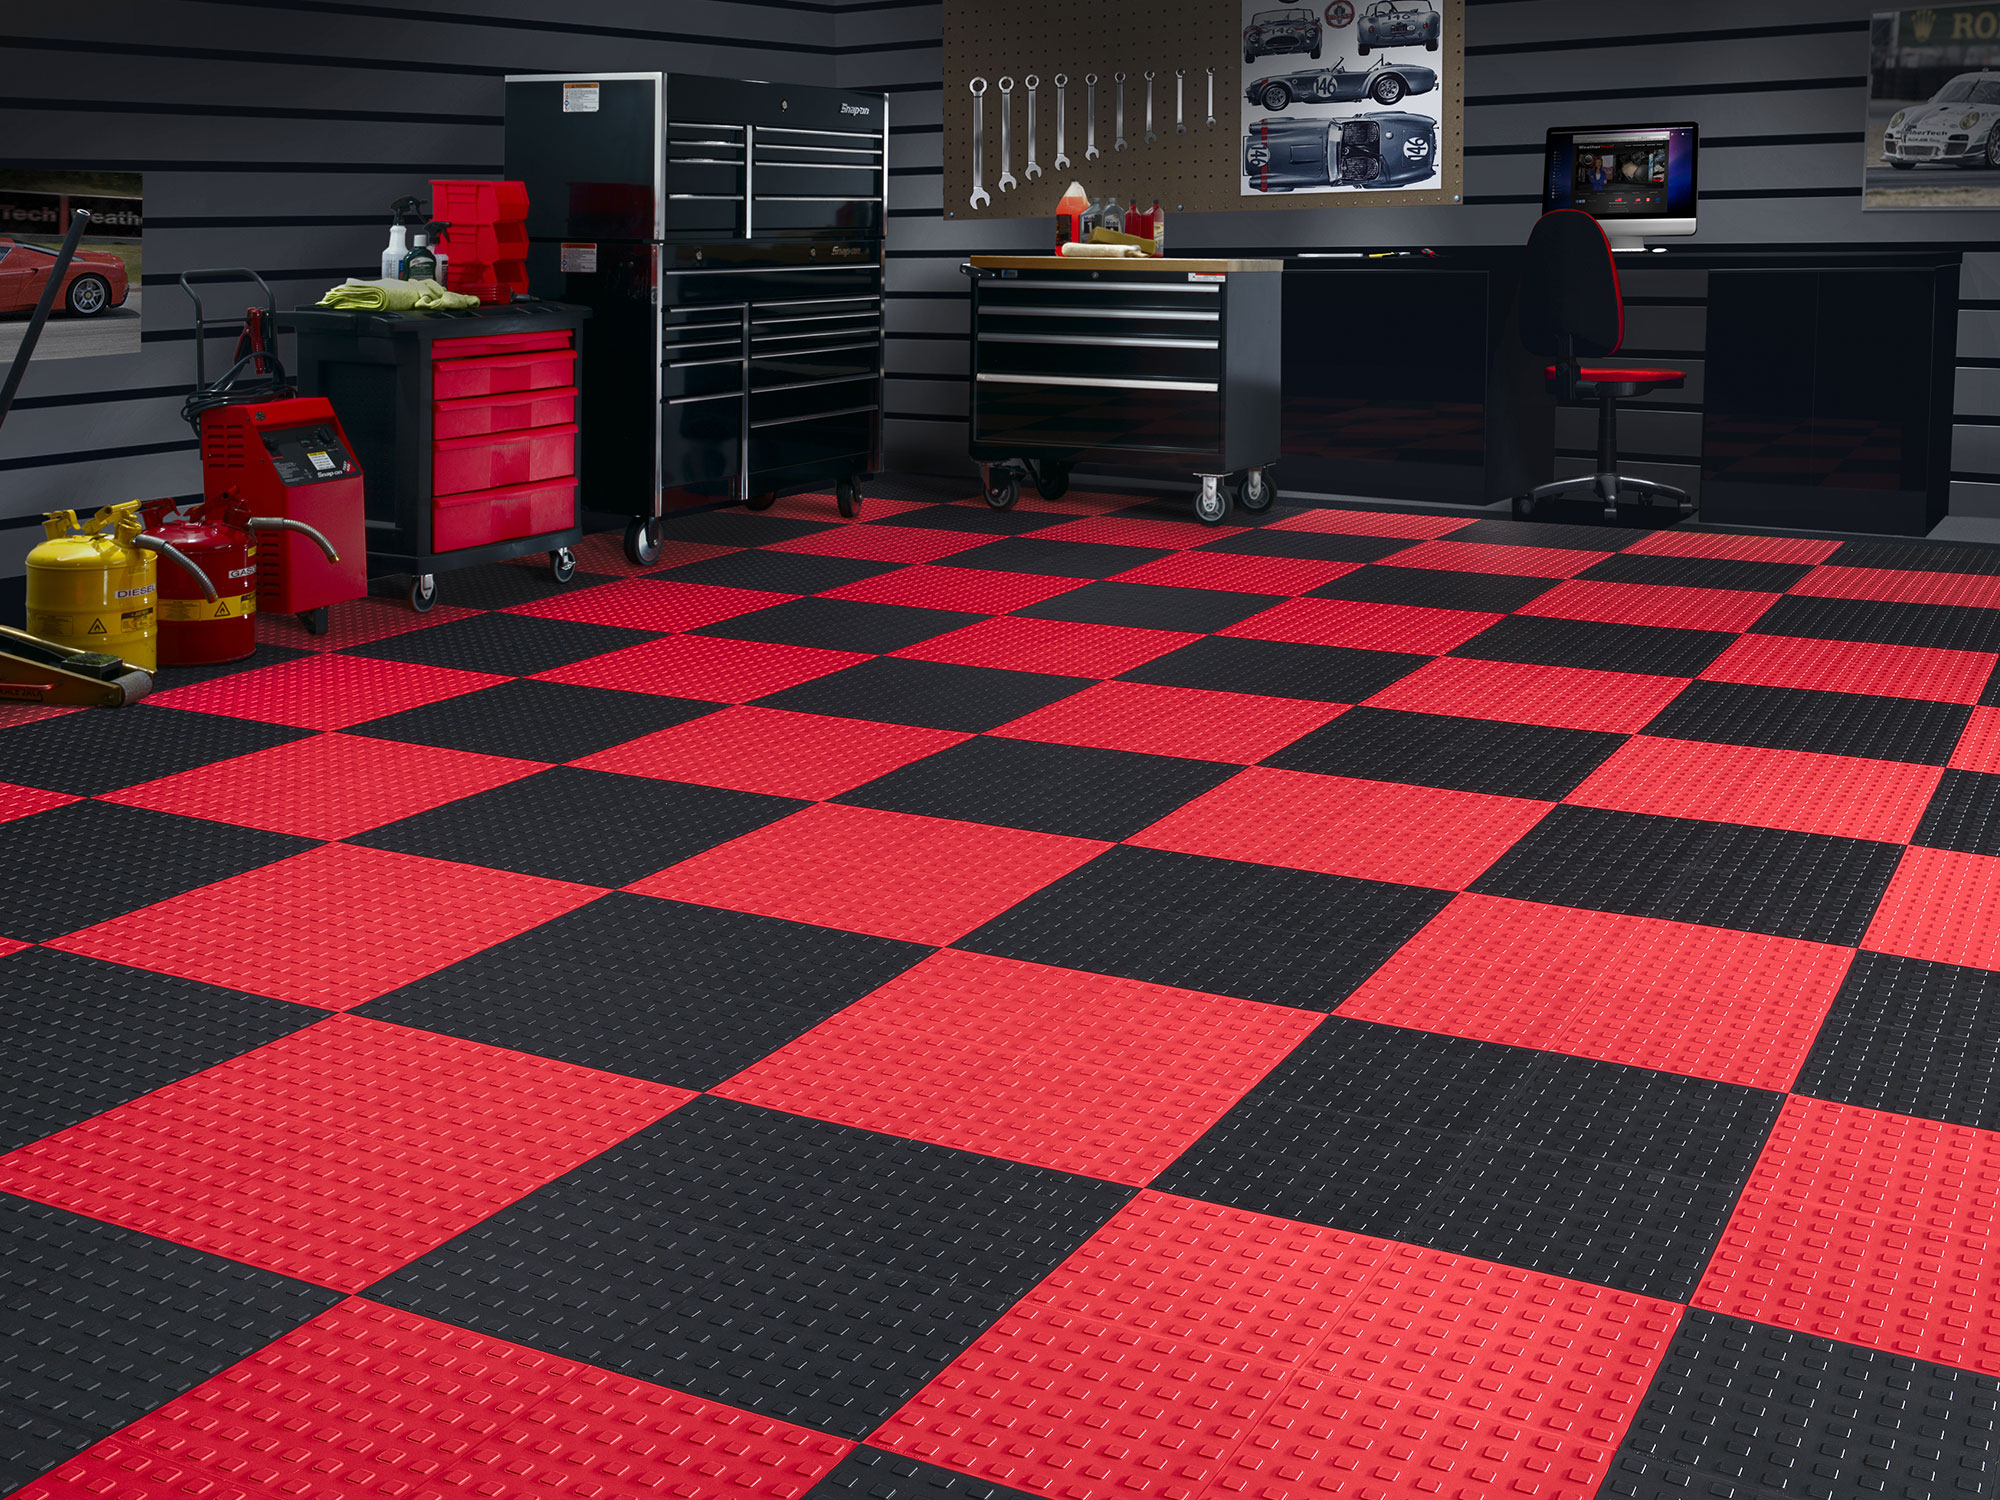 Red and Black TechCare installed in a garage.